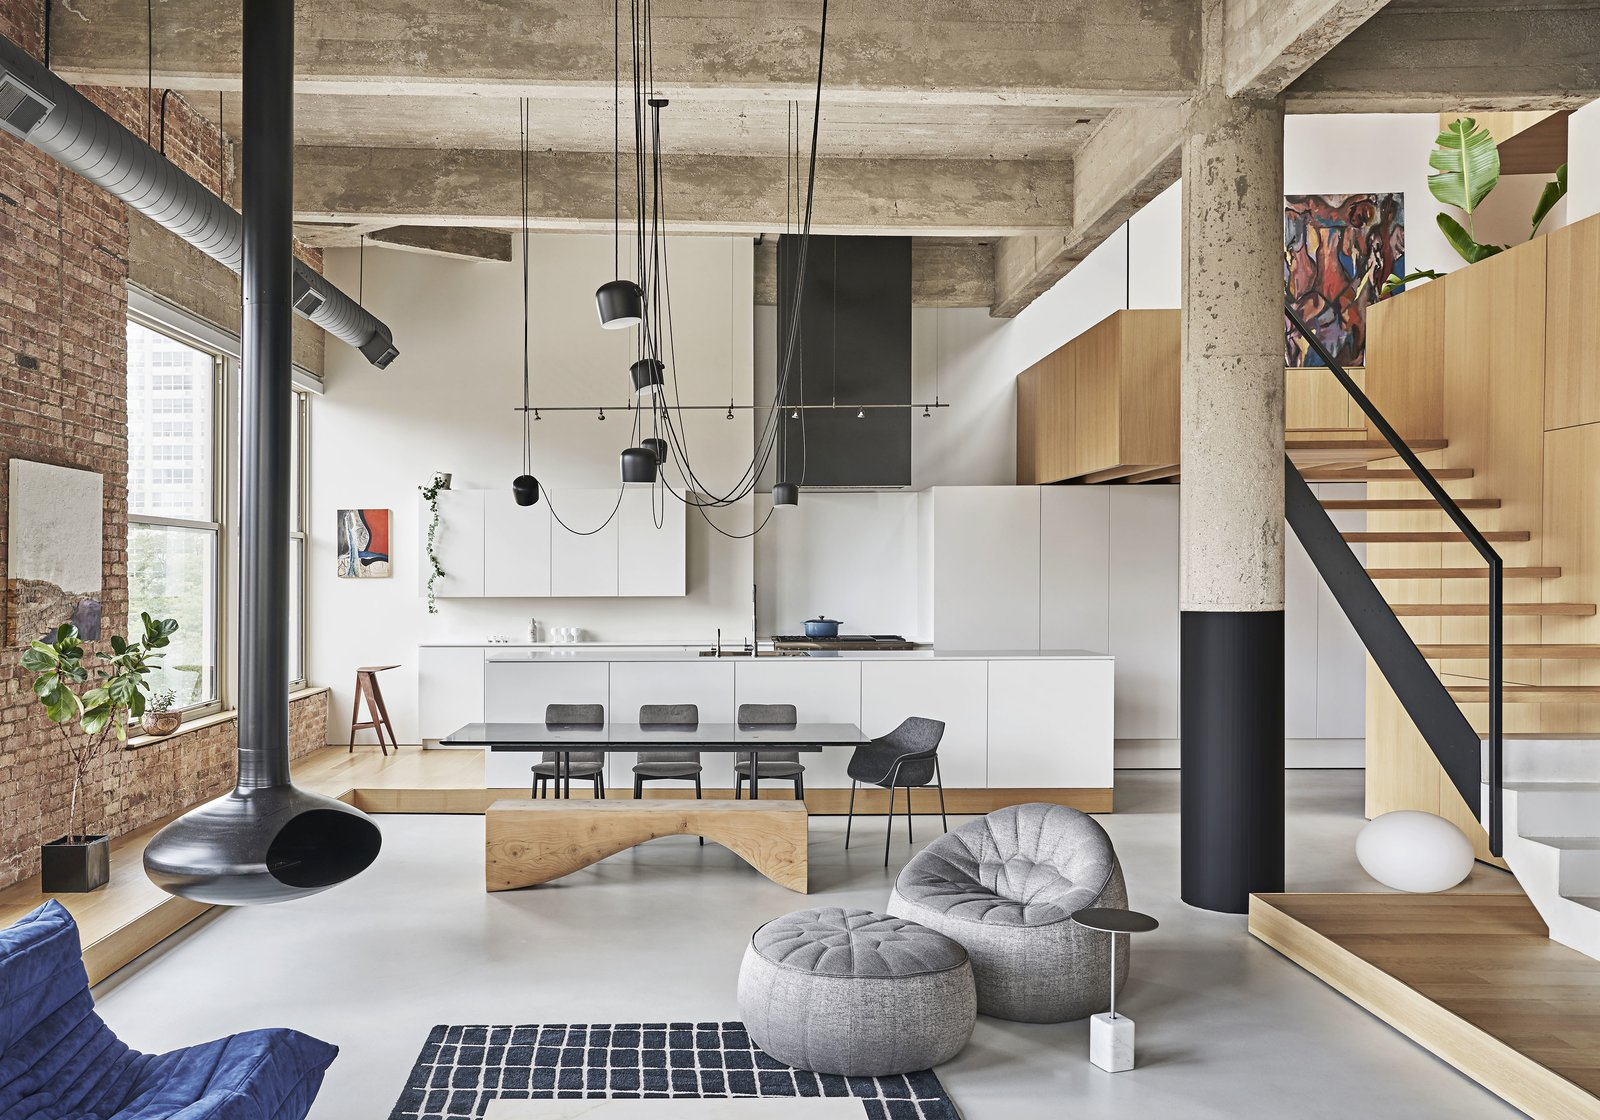 The wood through-line continues throughout the main space with a raised platform that wraps the perimeter of the room. The platform surrounds the living and dining area, and runs beneath the sleeping zone and stair landing.